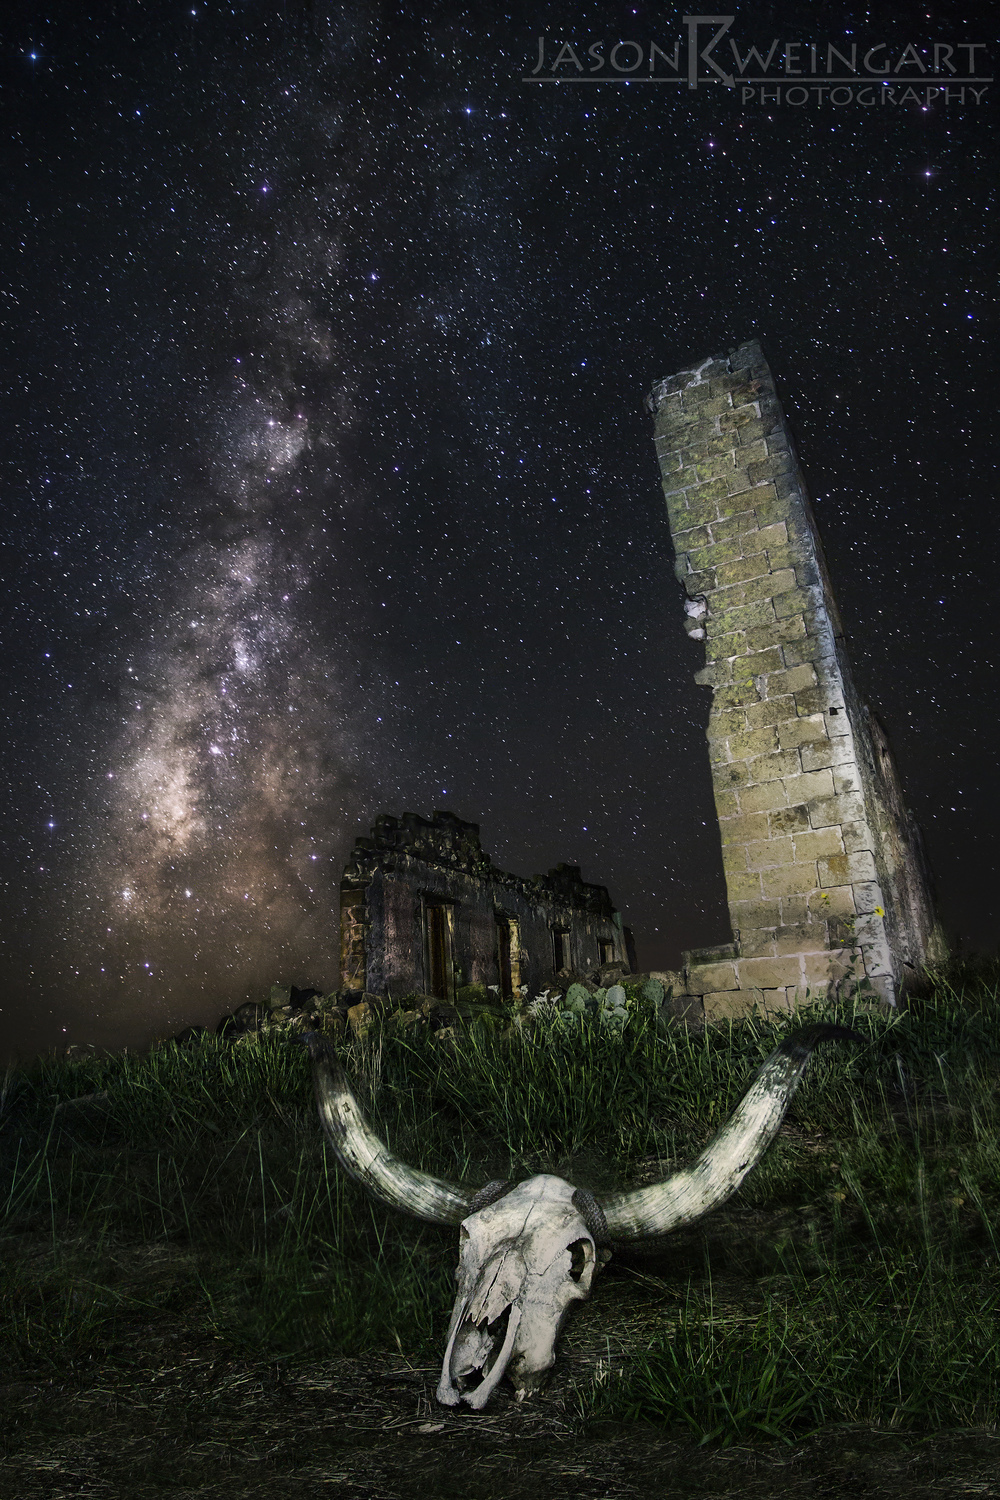 The ruins of the San Fernando Academy under the Milky Way. Shot on September 30, 2013.